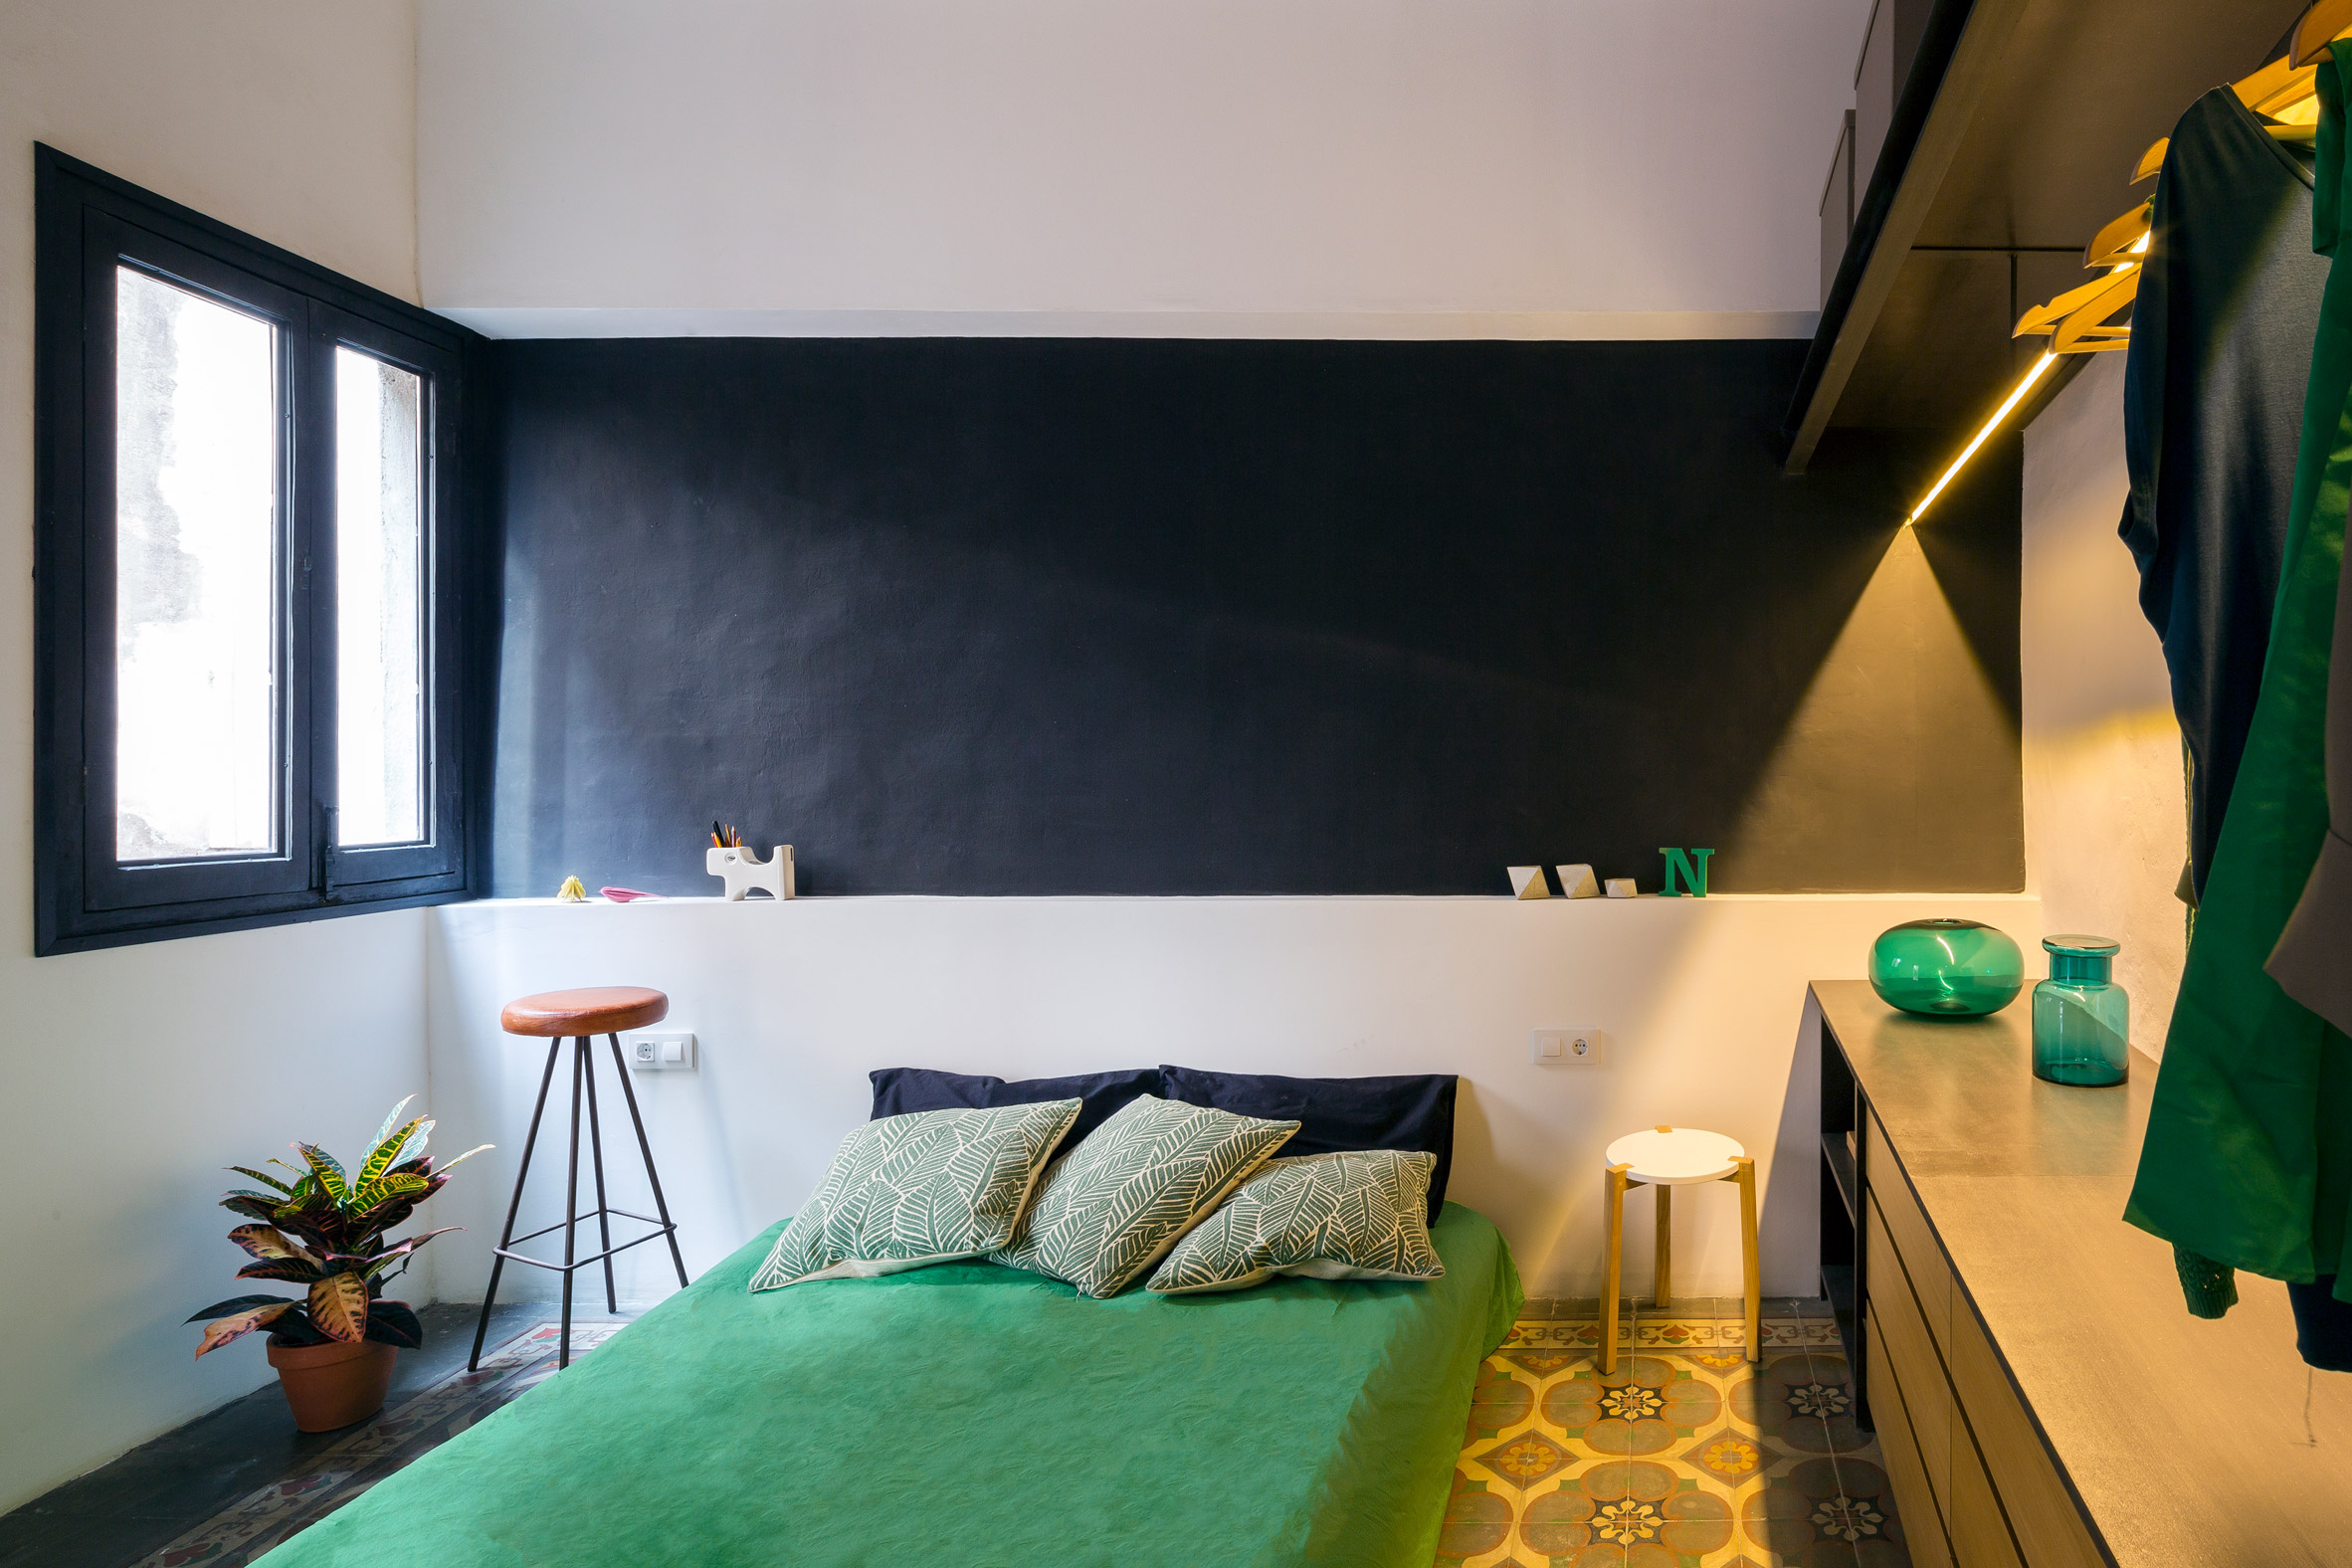 end-of-the-roc-nook-architects-interiors-apartments-spain-barcelona_dezeen_2364_col_6